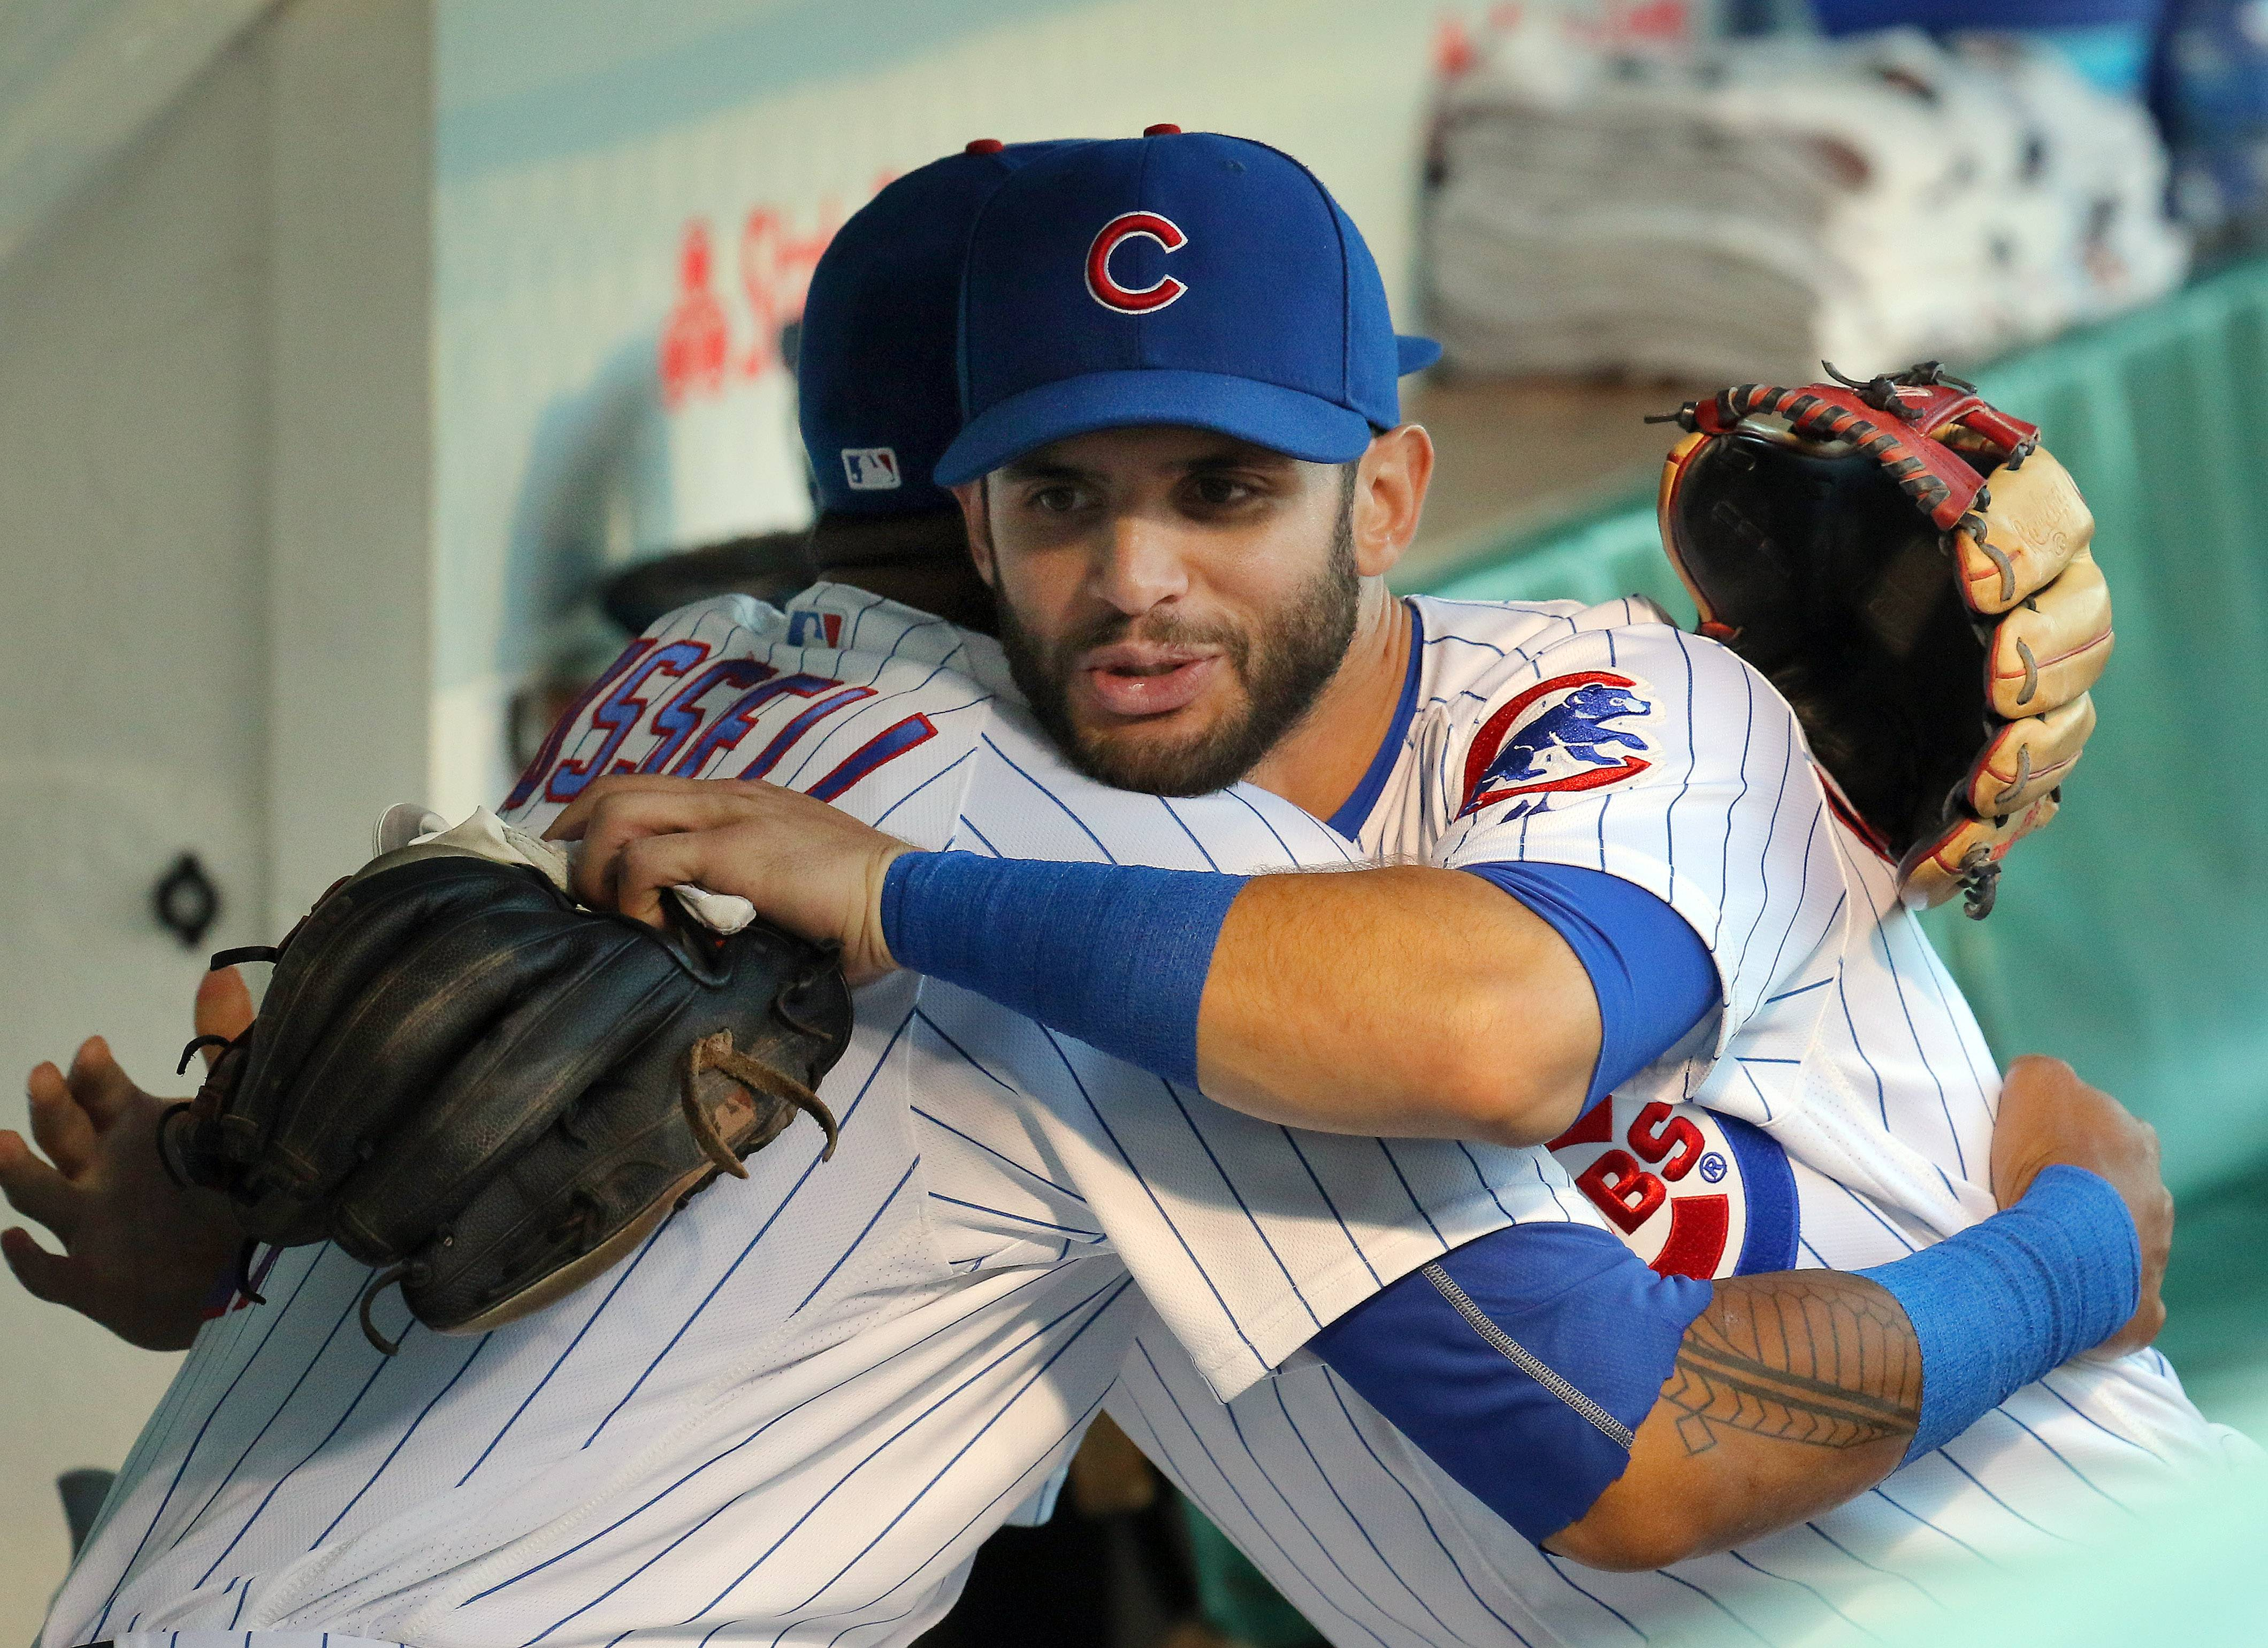 The Cubs recalled utility player Tommy La Stella from Class AAA Iowa and manager Joe Maddon has put him in the starting lineup for tonight's game against the Pittsburgh Pirates.